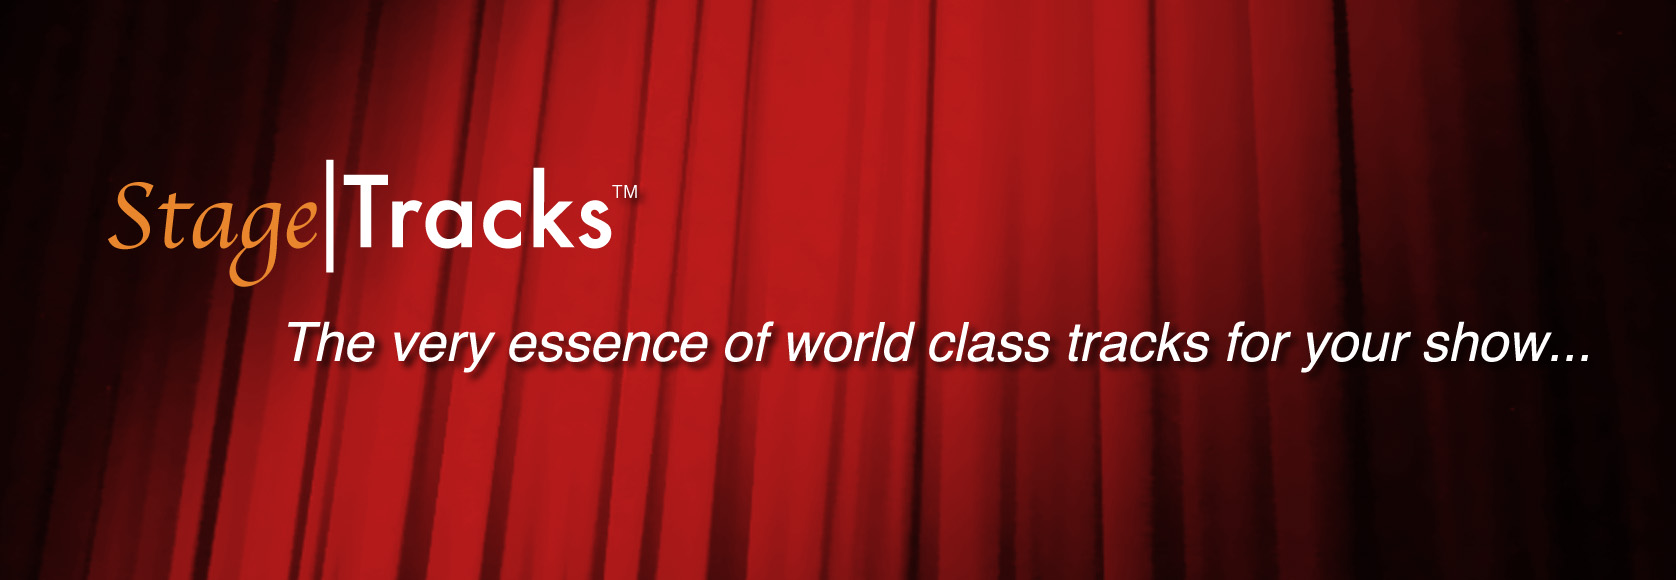 Stage|Tracks - The very essence of world class tracks for your show...